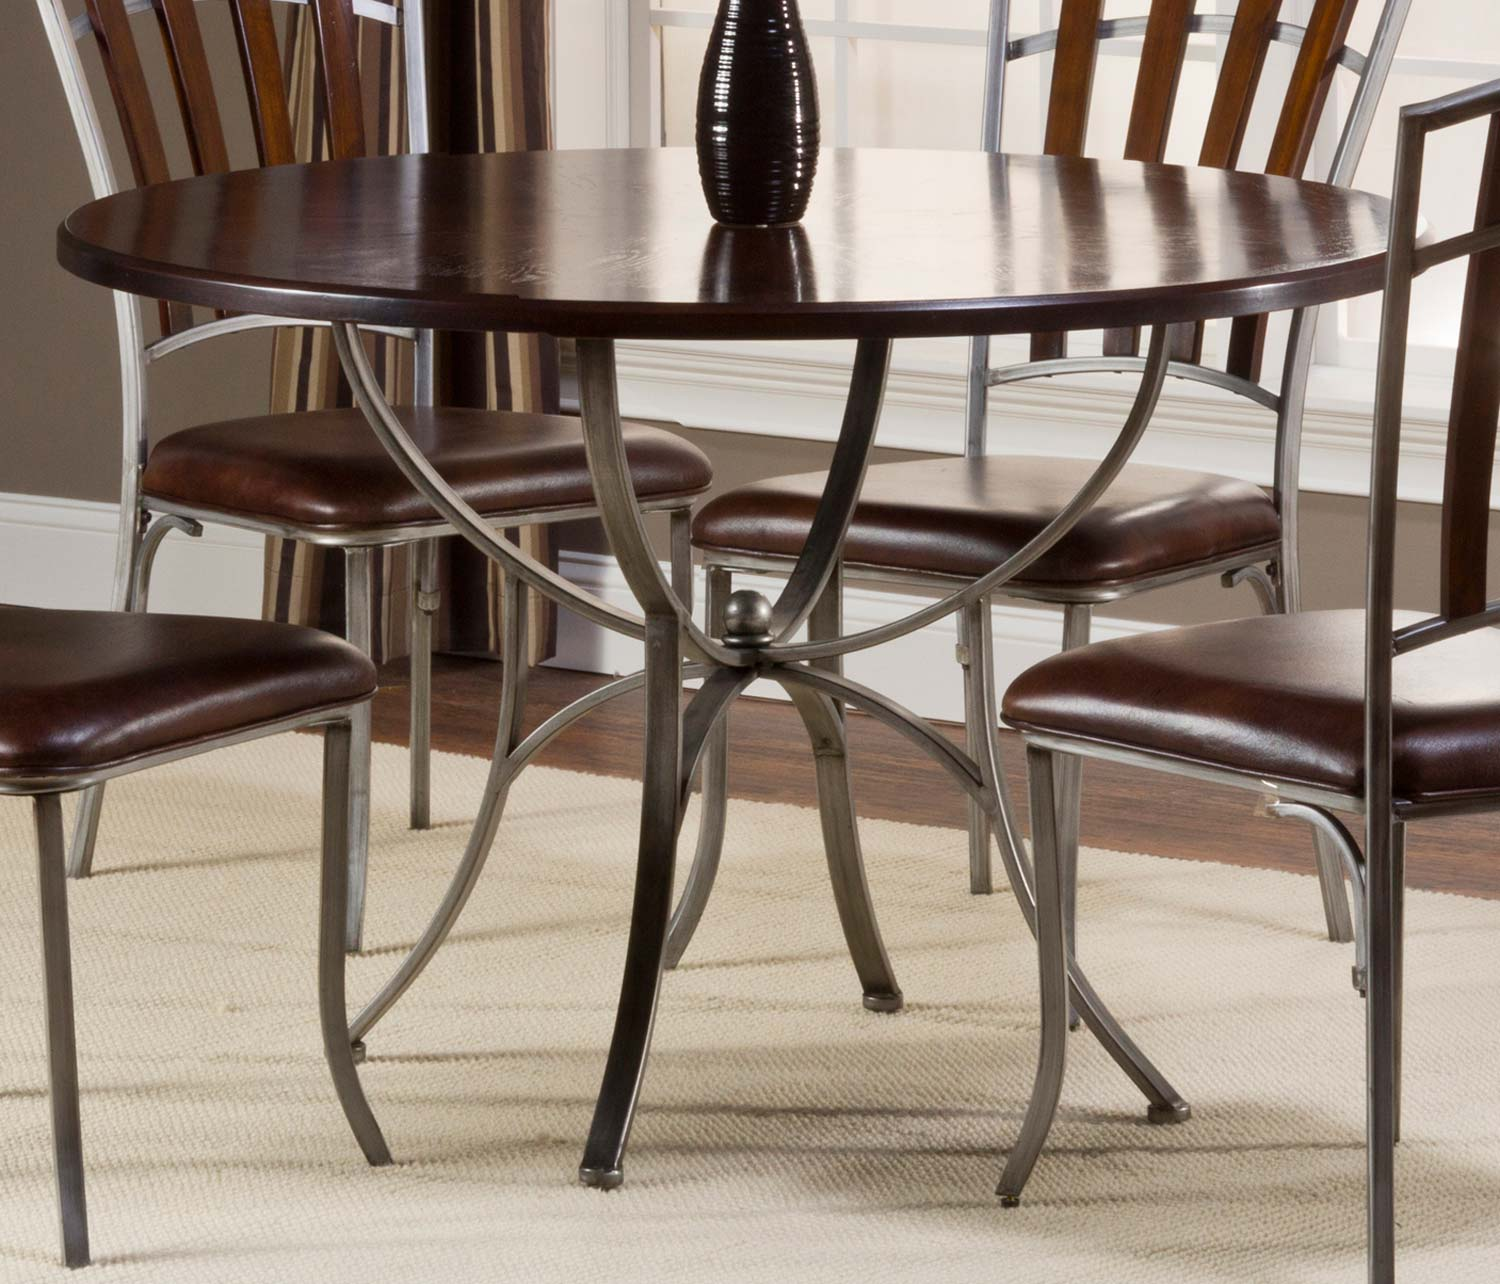 Hillsdale Sarasota Round Dining Table - Dark Walnut